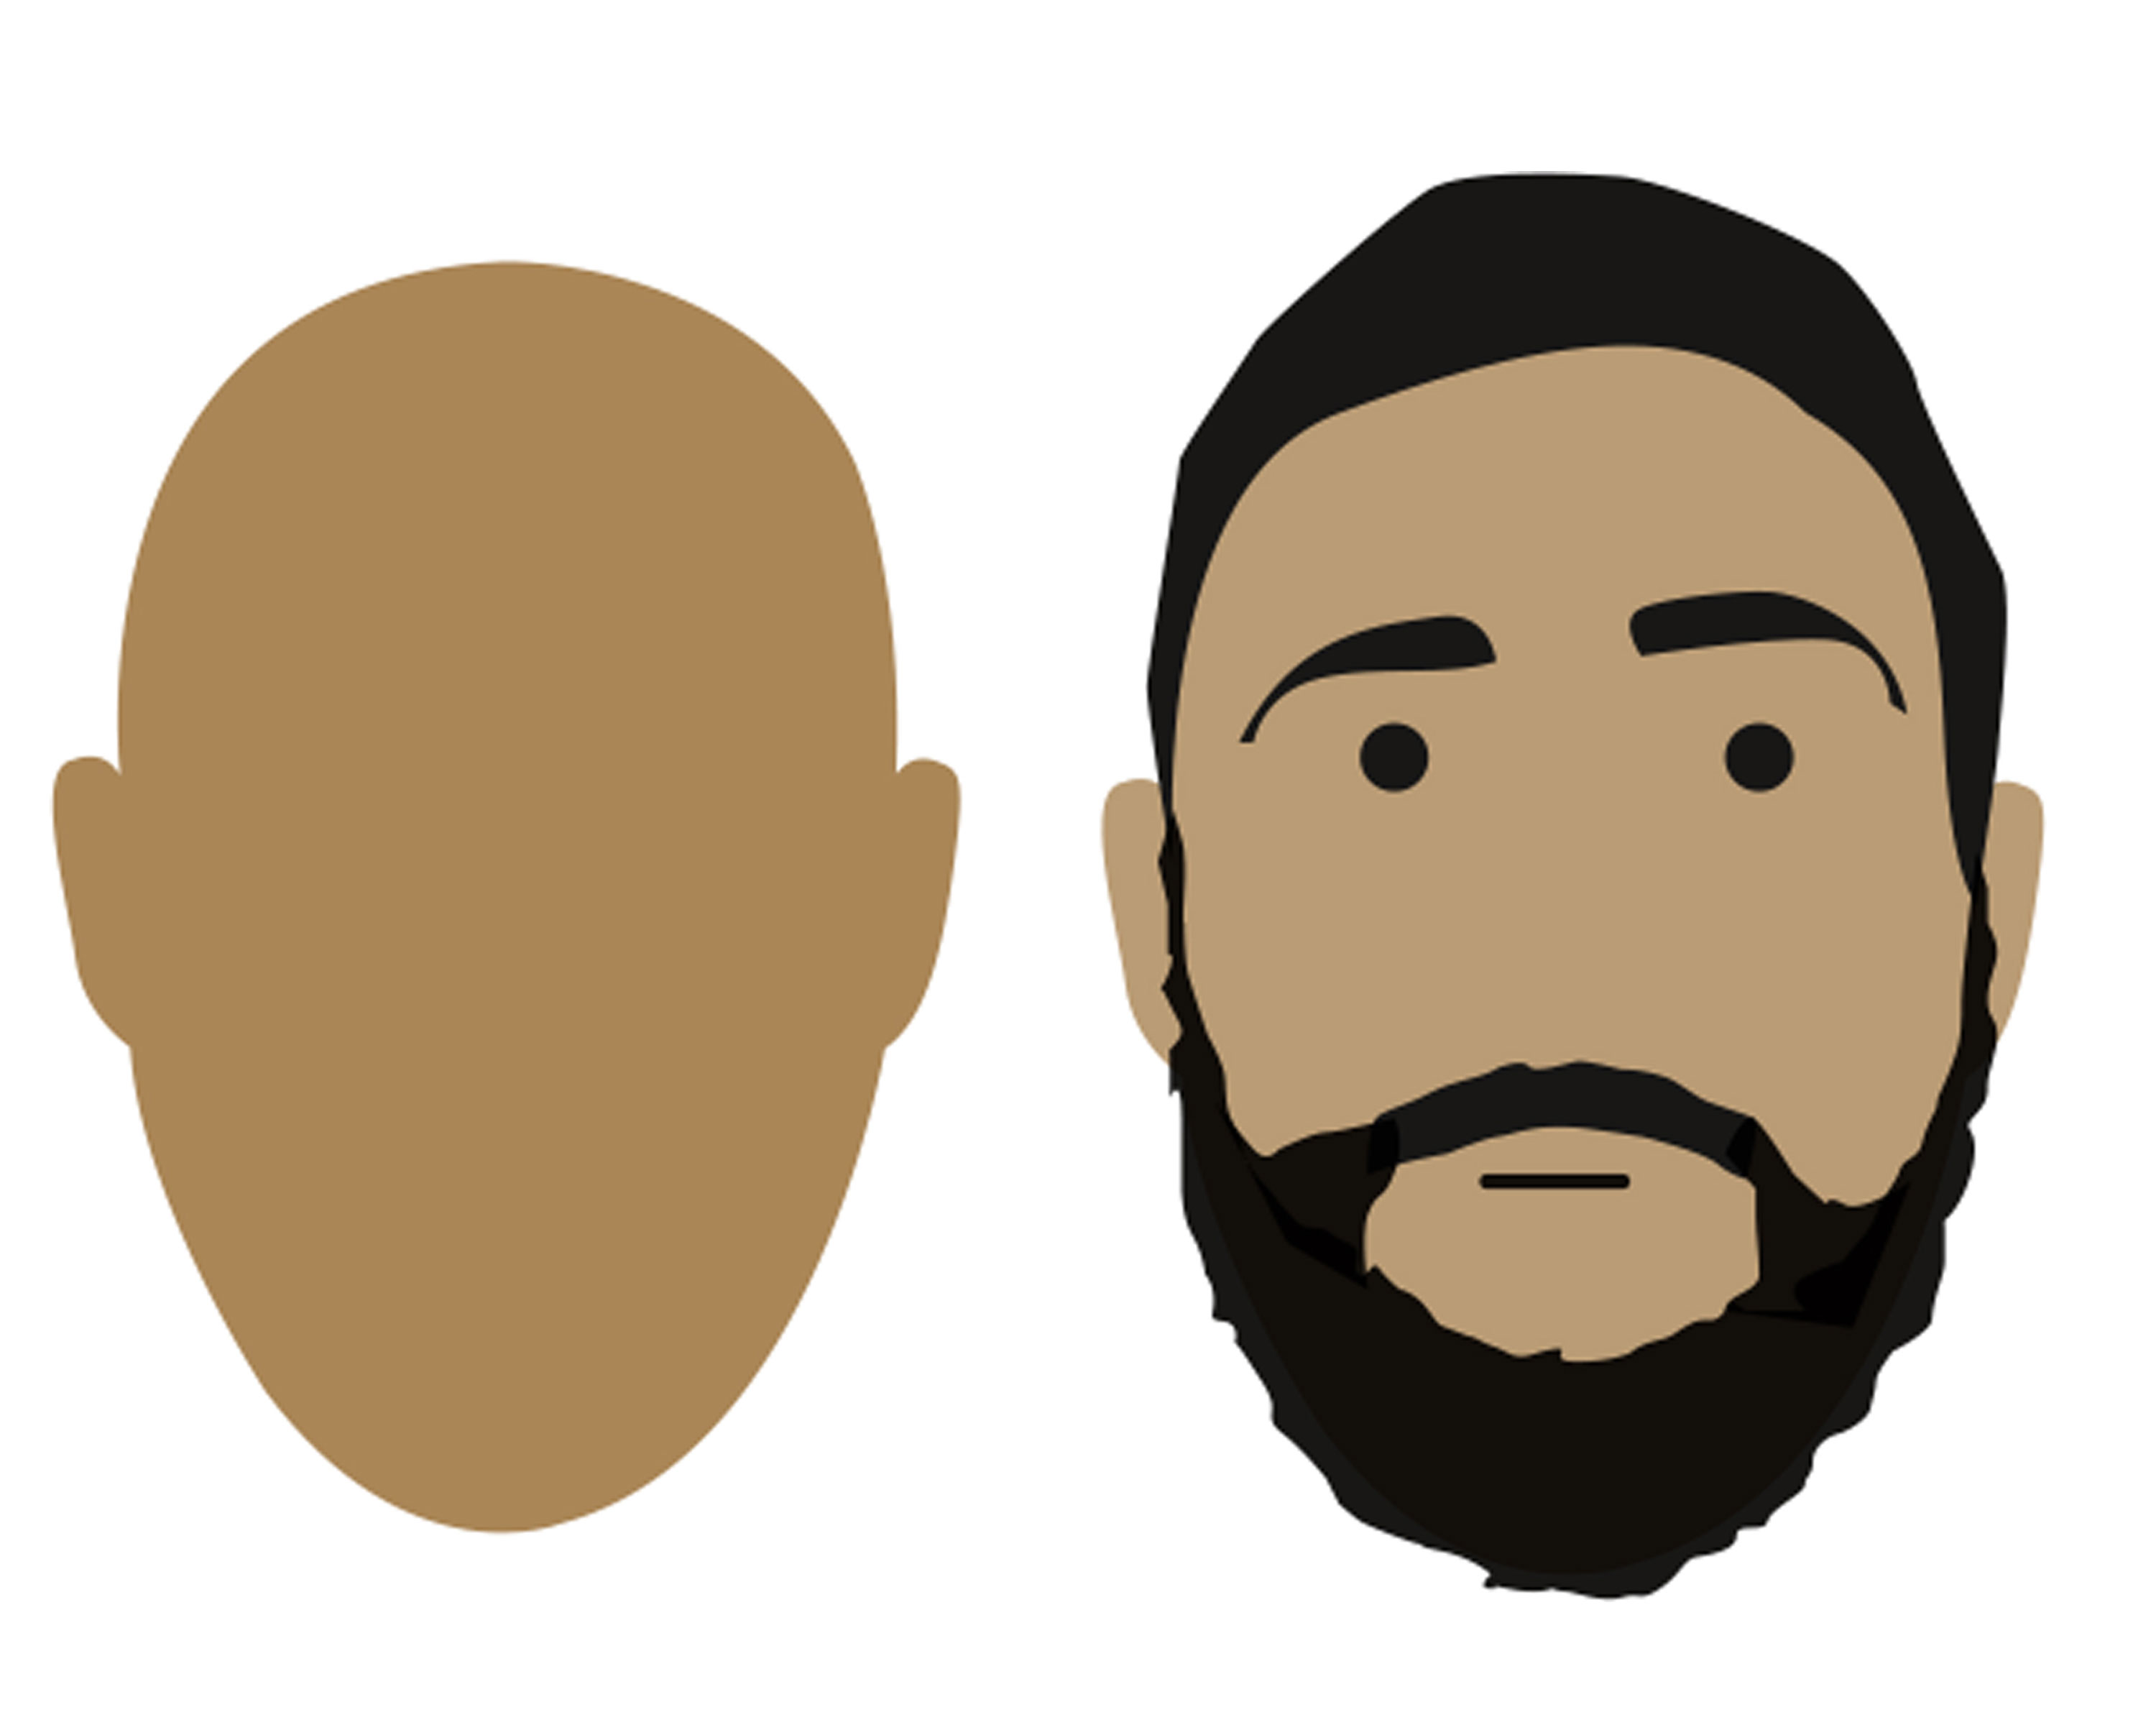 Beard translucent. How to choose the